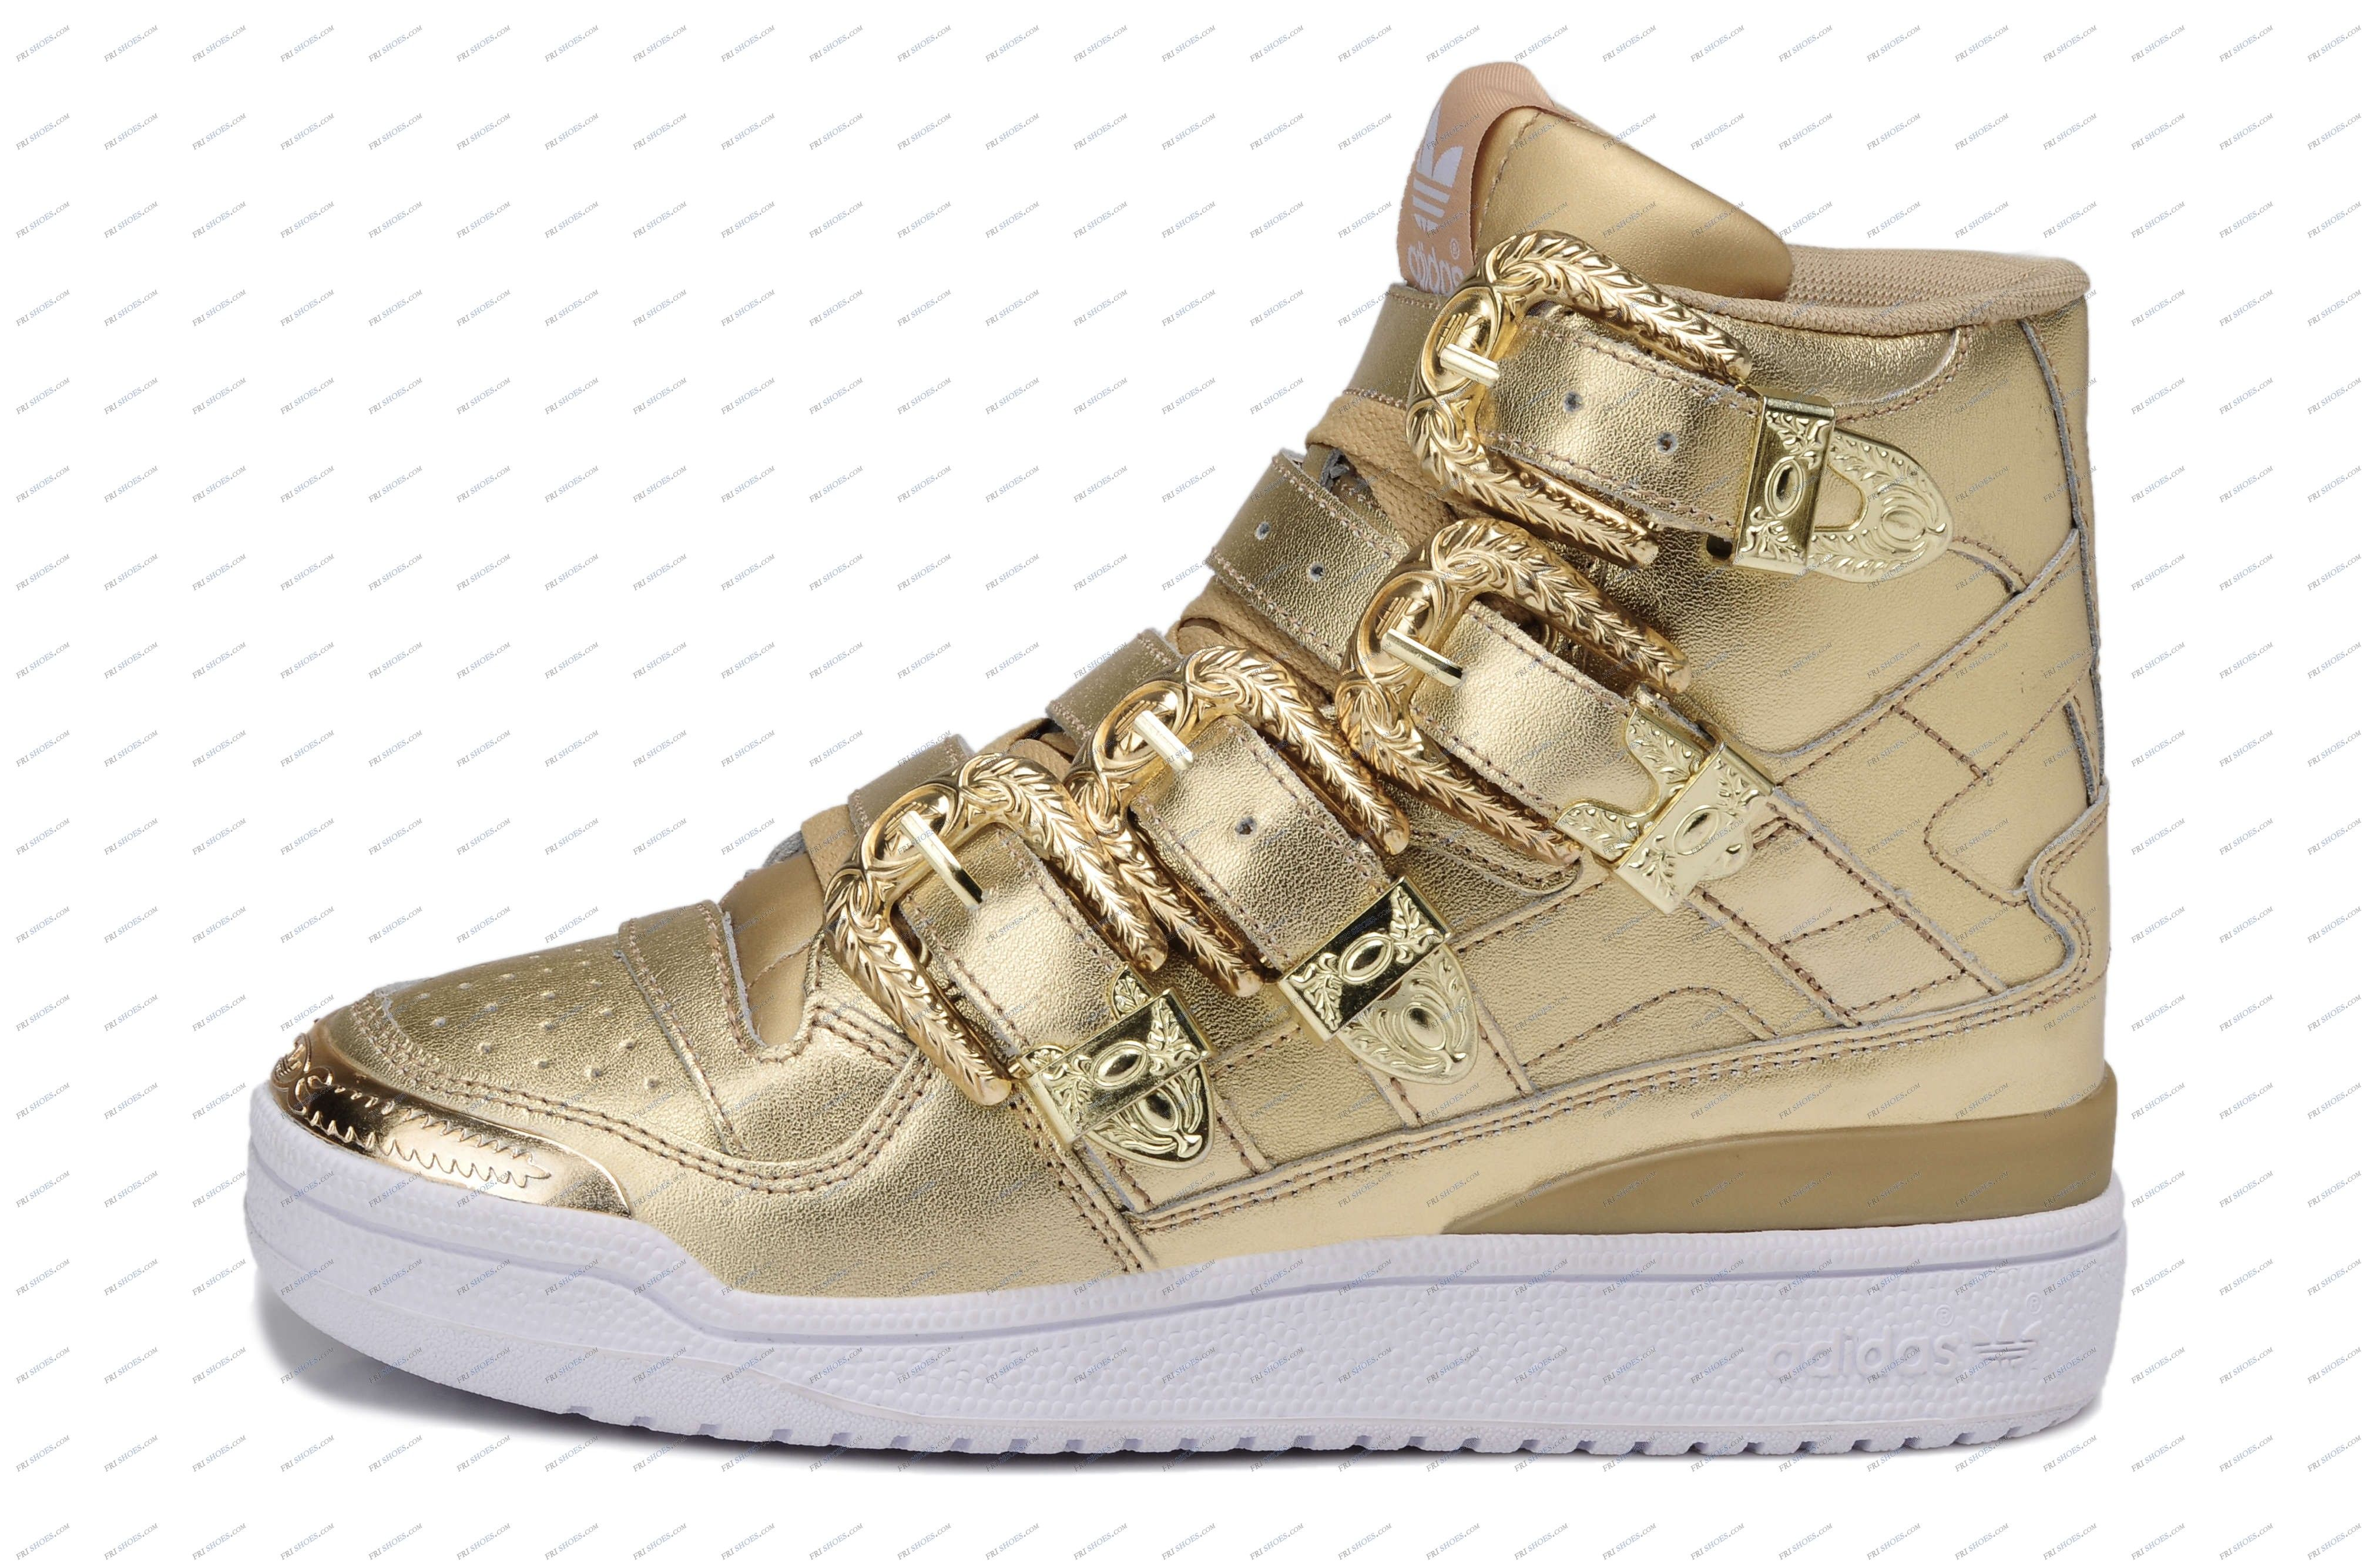 673e206502d1 Adidas Originals Jeremy Scott Forum Hey Metal Golden Women s Running Shoes  sneakers online shop